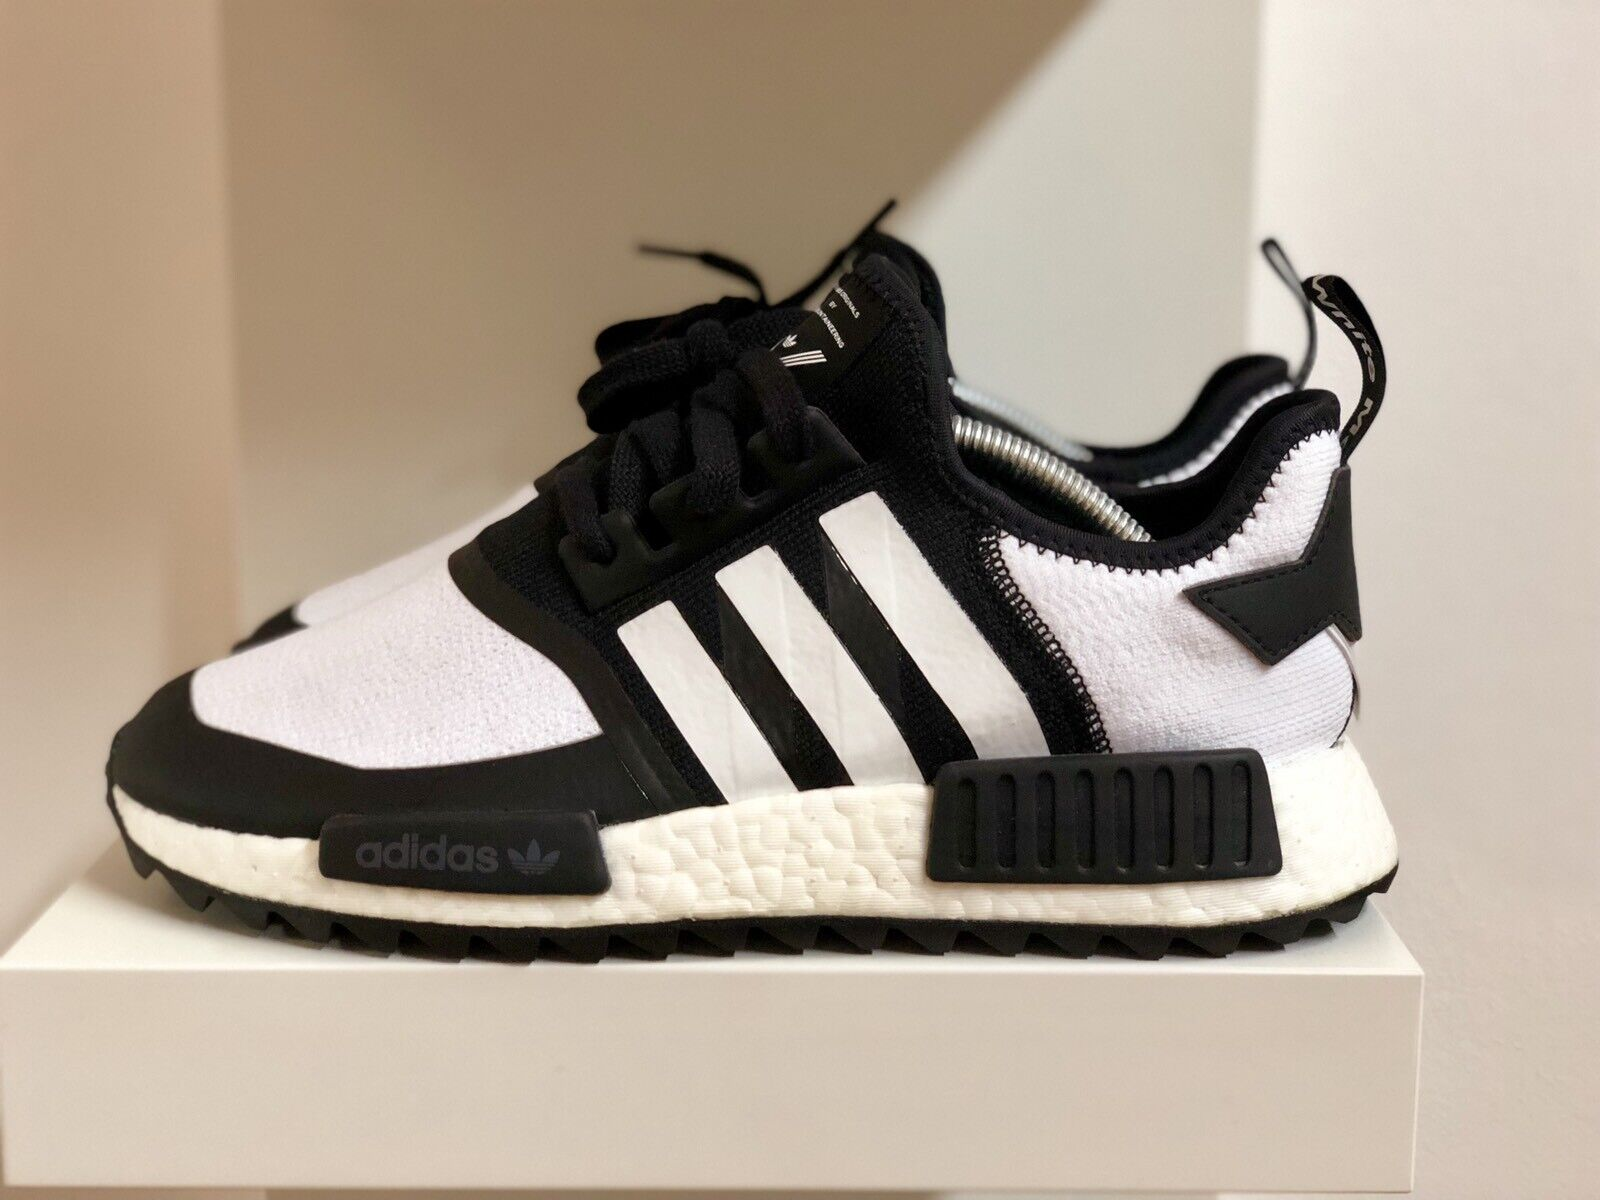 58d6a94696e1e Adidas X White Mountaineering Nmd Trail Pk. BS510 MBT shoes bluee leather  men ...